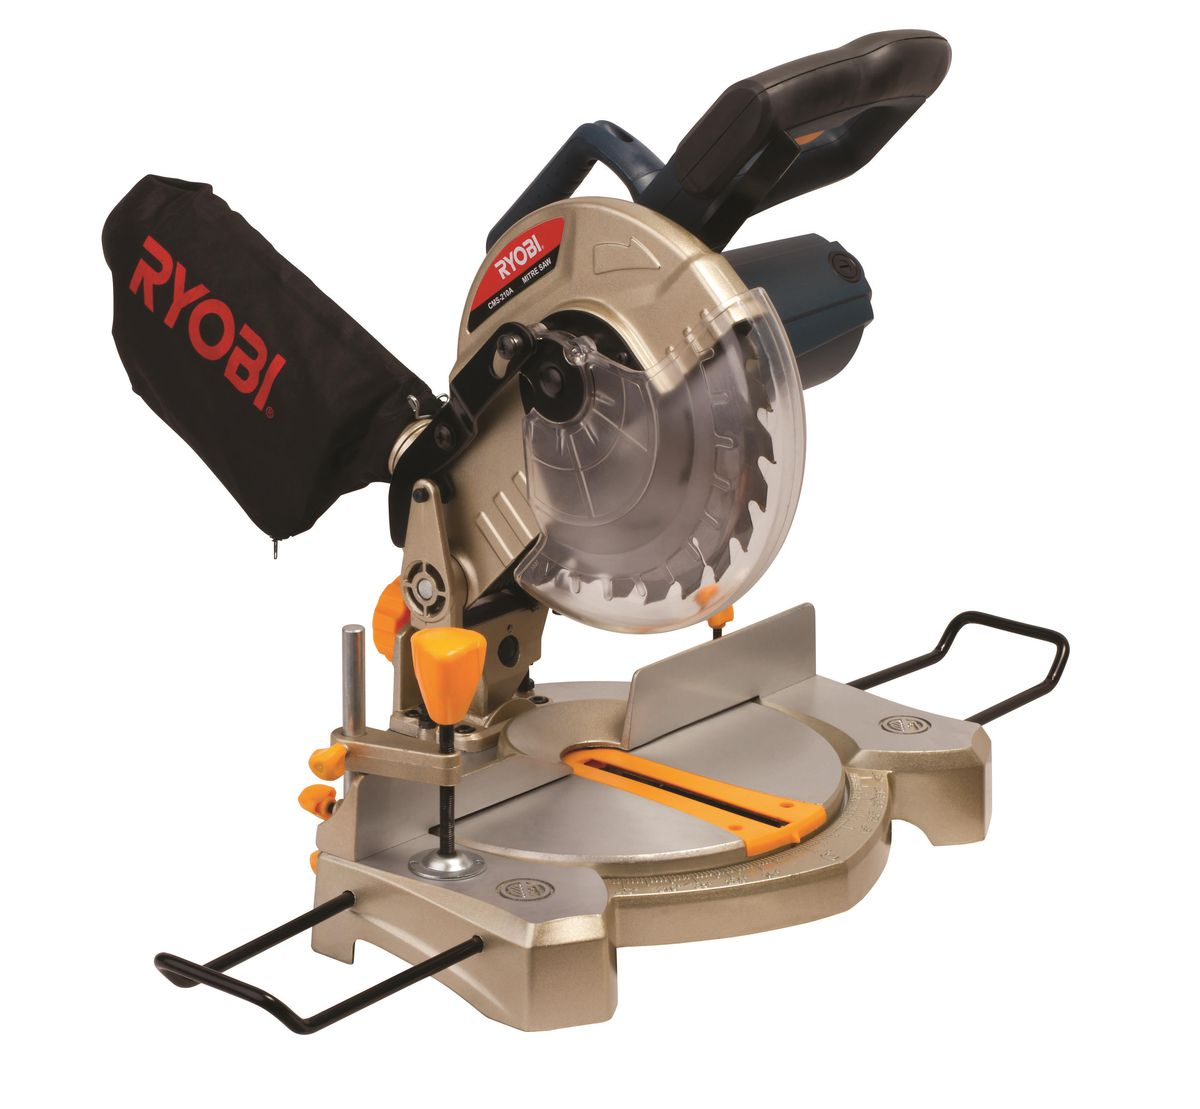 Ryobi mitre saw 1200 watt 210mm buy online in south africa ryobi mitre saw 1200 watt 210mm loading zoom greentooth Image collections